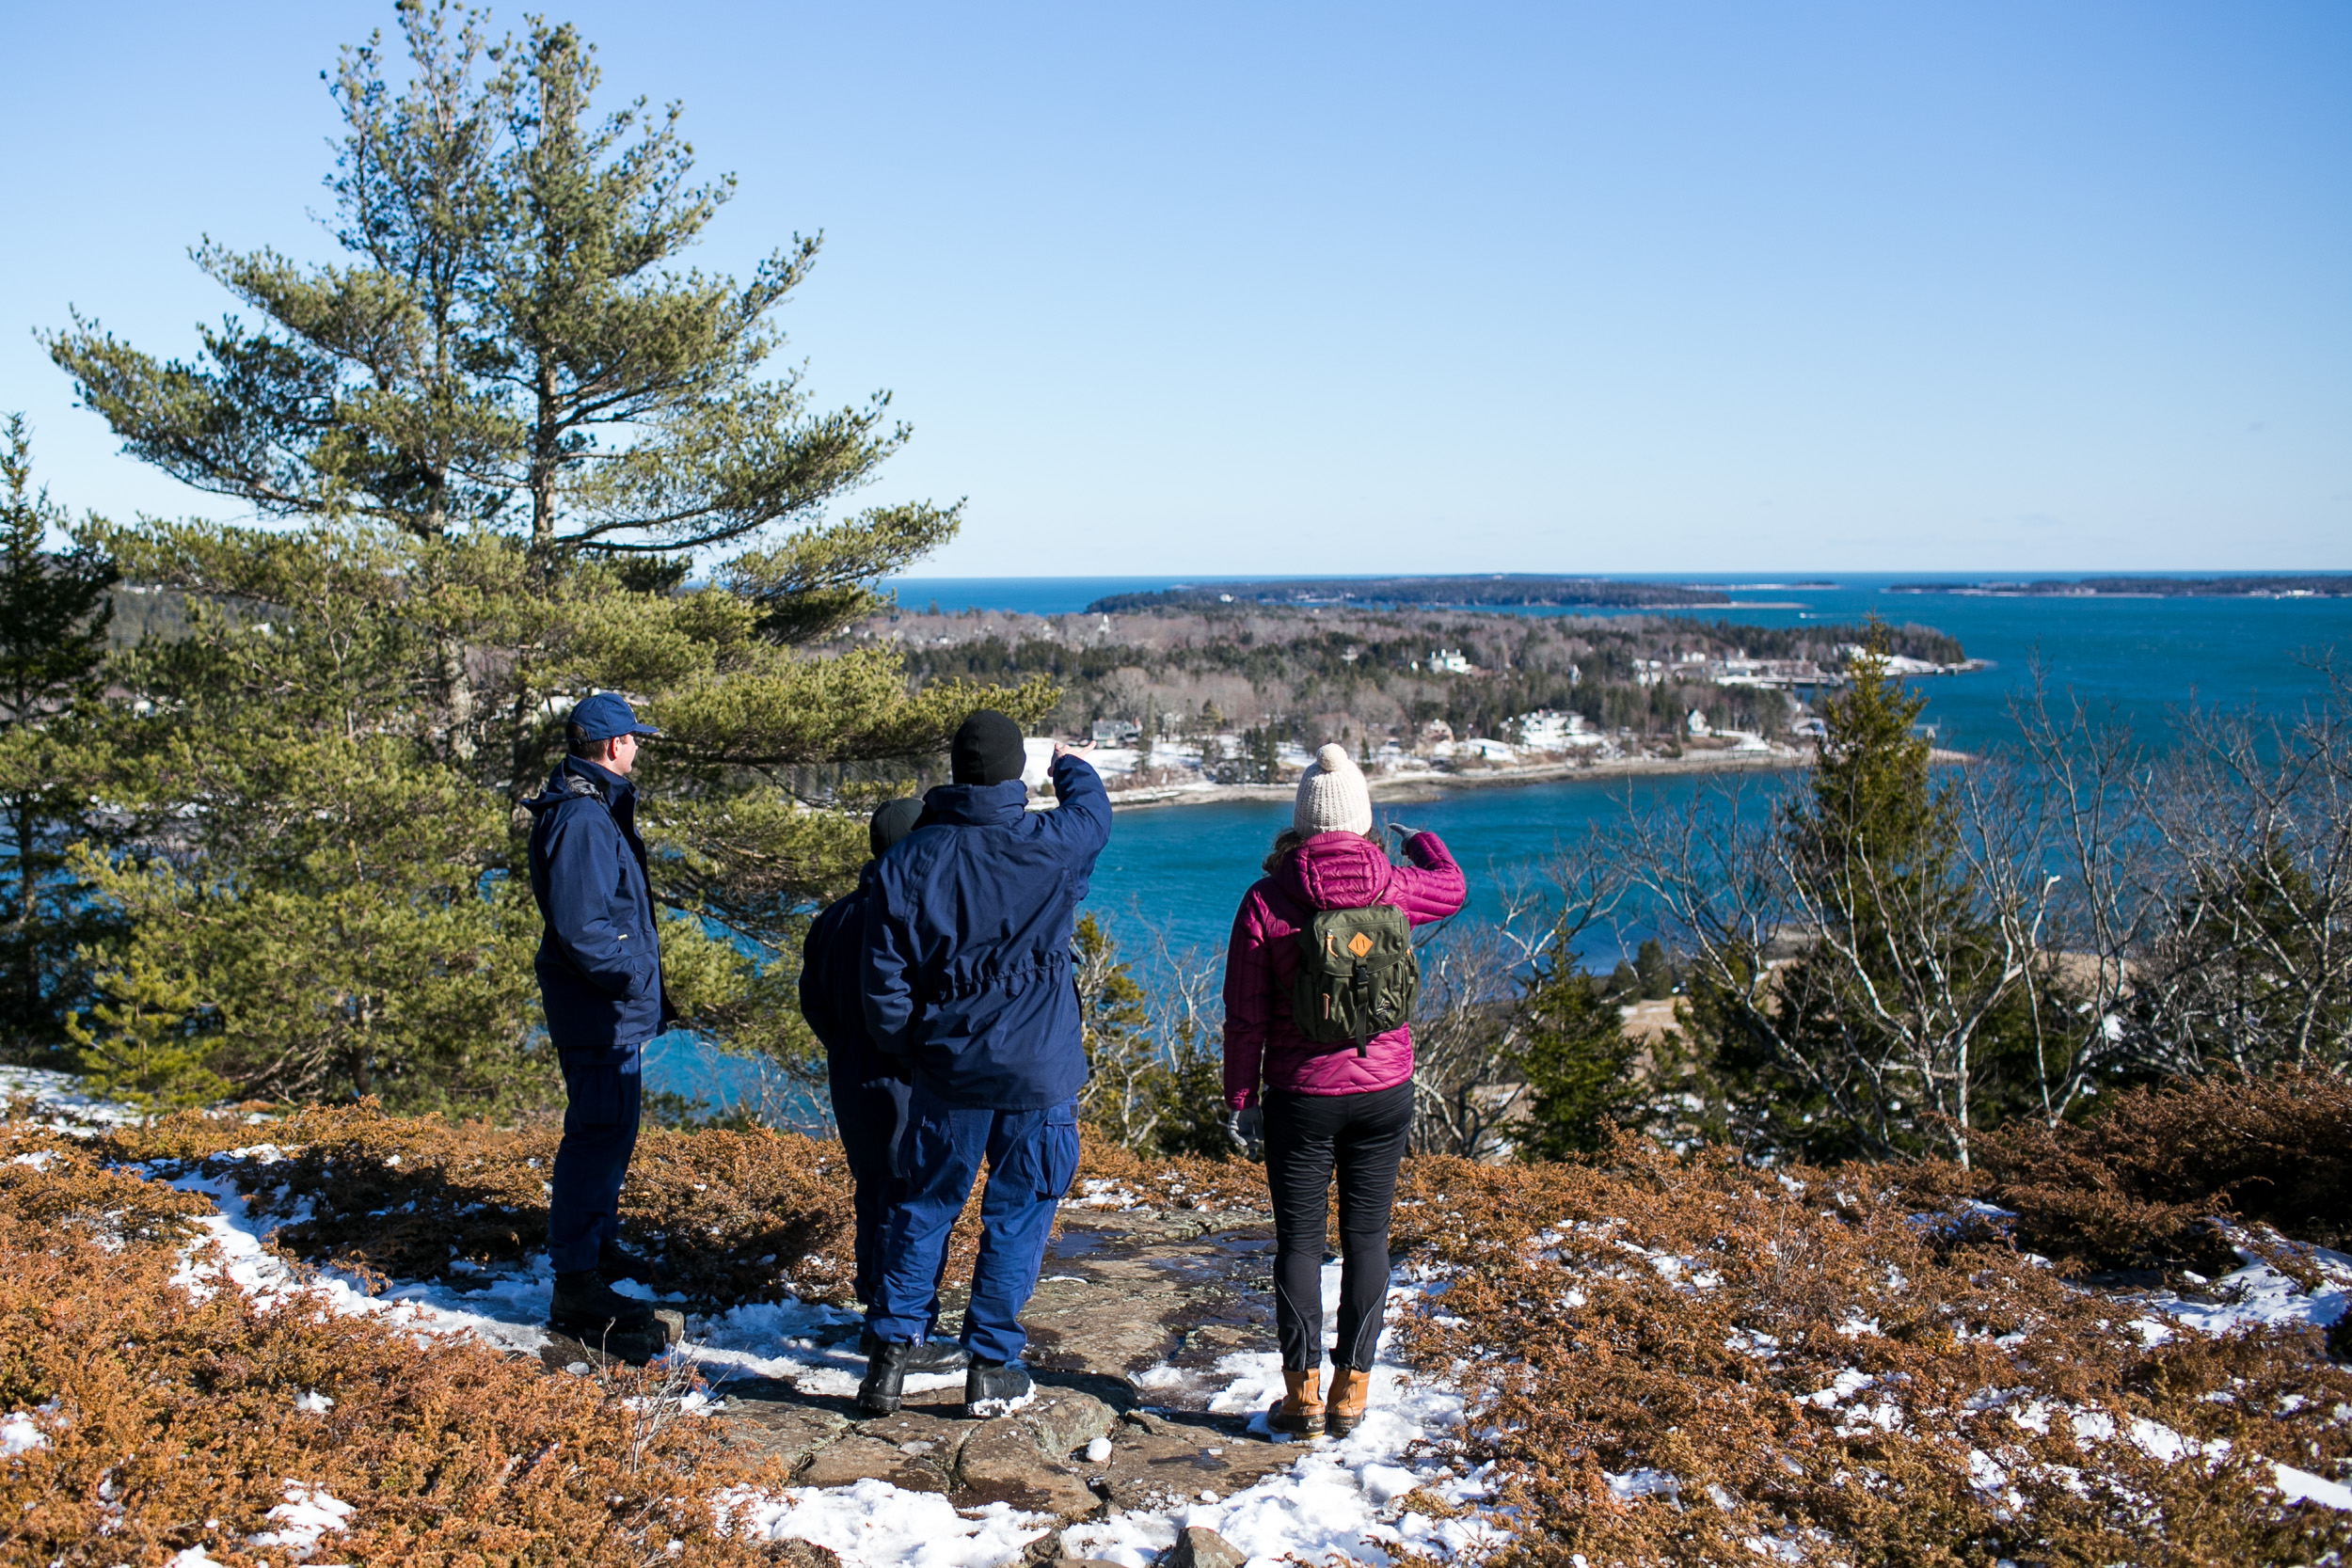 I led a photography workshop with American300 at the USCG Station Southwest Harbor with Cam Held and Christine Reighly who would later in 2017 launch Maine the Way with my photos and writing in one of the stories.